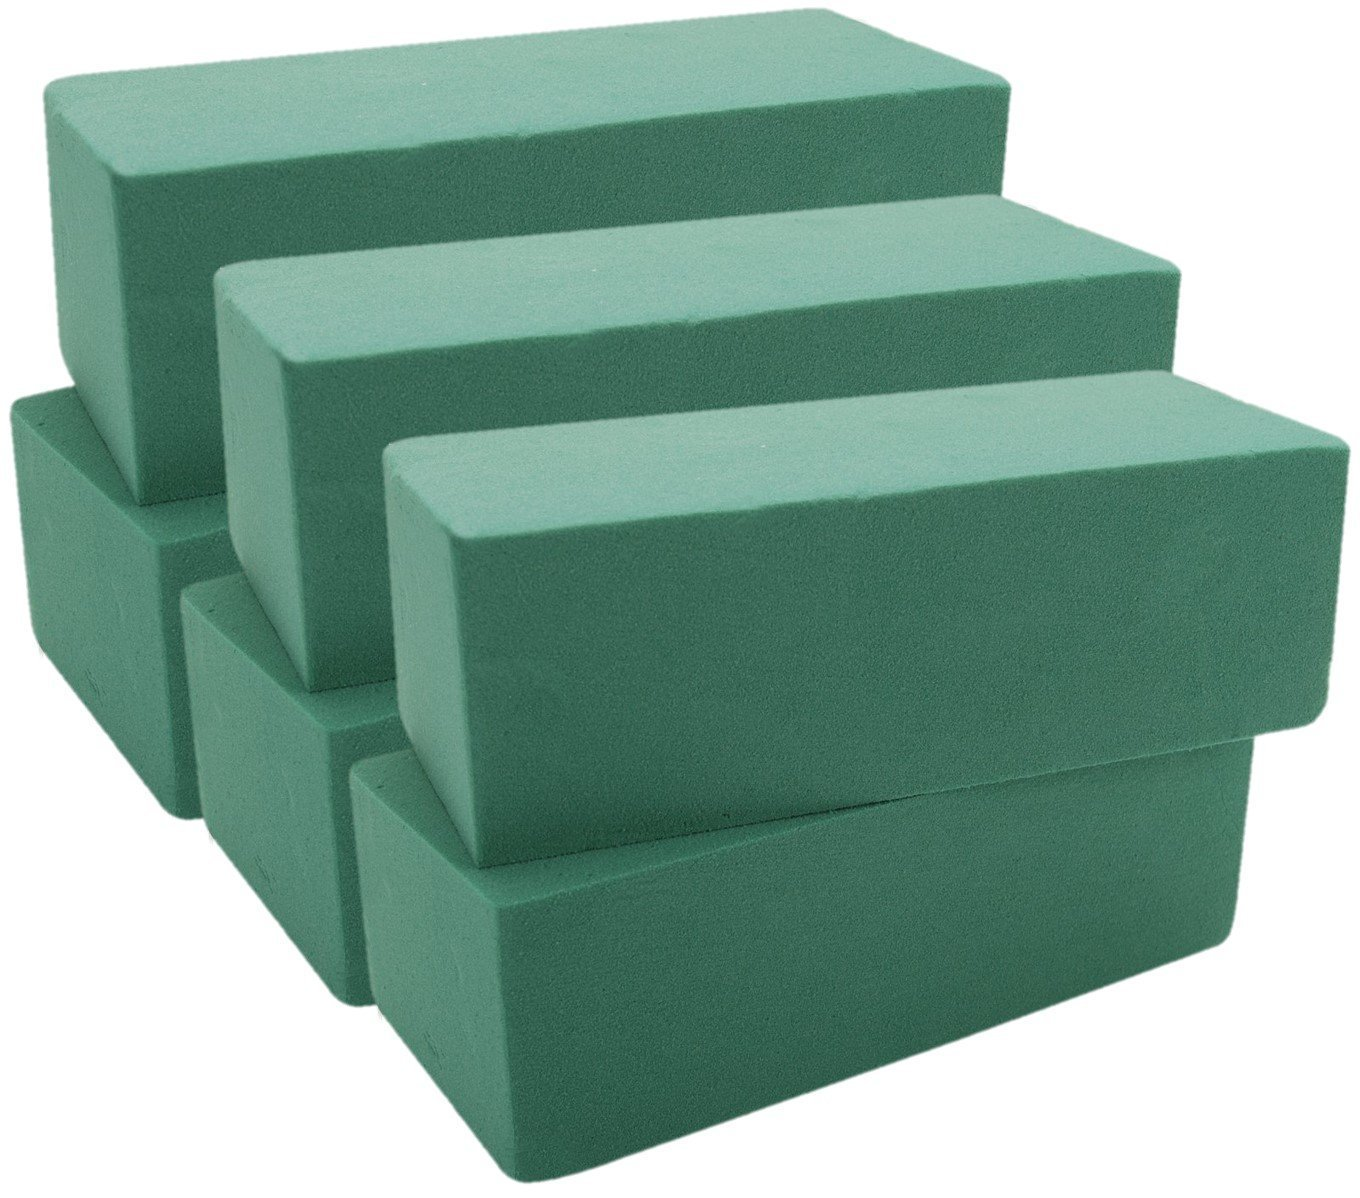 Premium Floral Foam Bricks Green Styrofoam Wet Foam Blocks 2.87 x 3.87 x 8.87 inches - 6/Pkg Green kedudes 4336861650